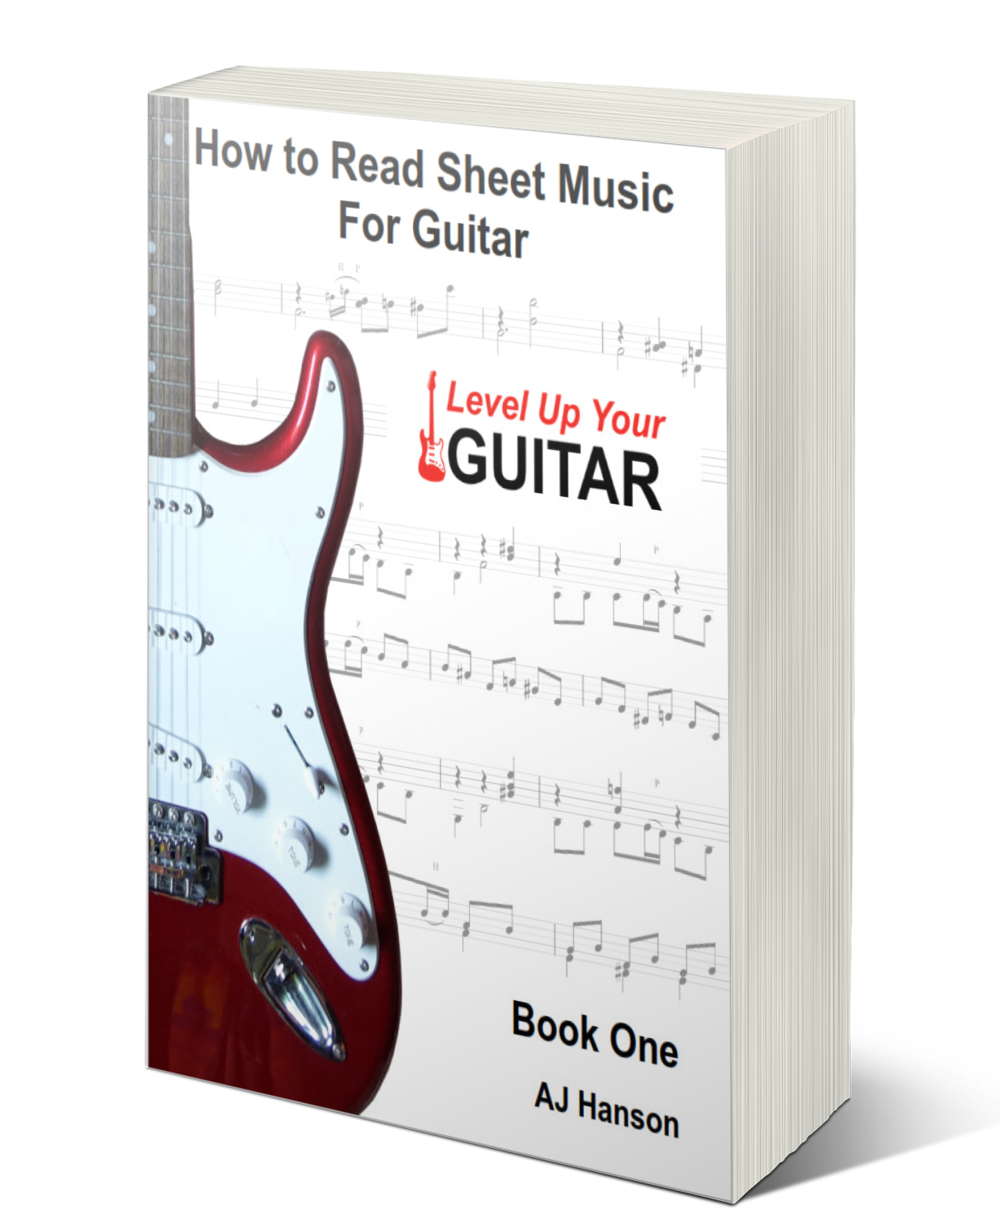 NEVER Purchase Sheet Music Again! Get Your Copy of My eBooks When You Sign Up!